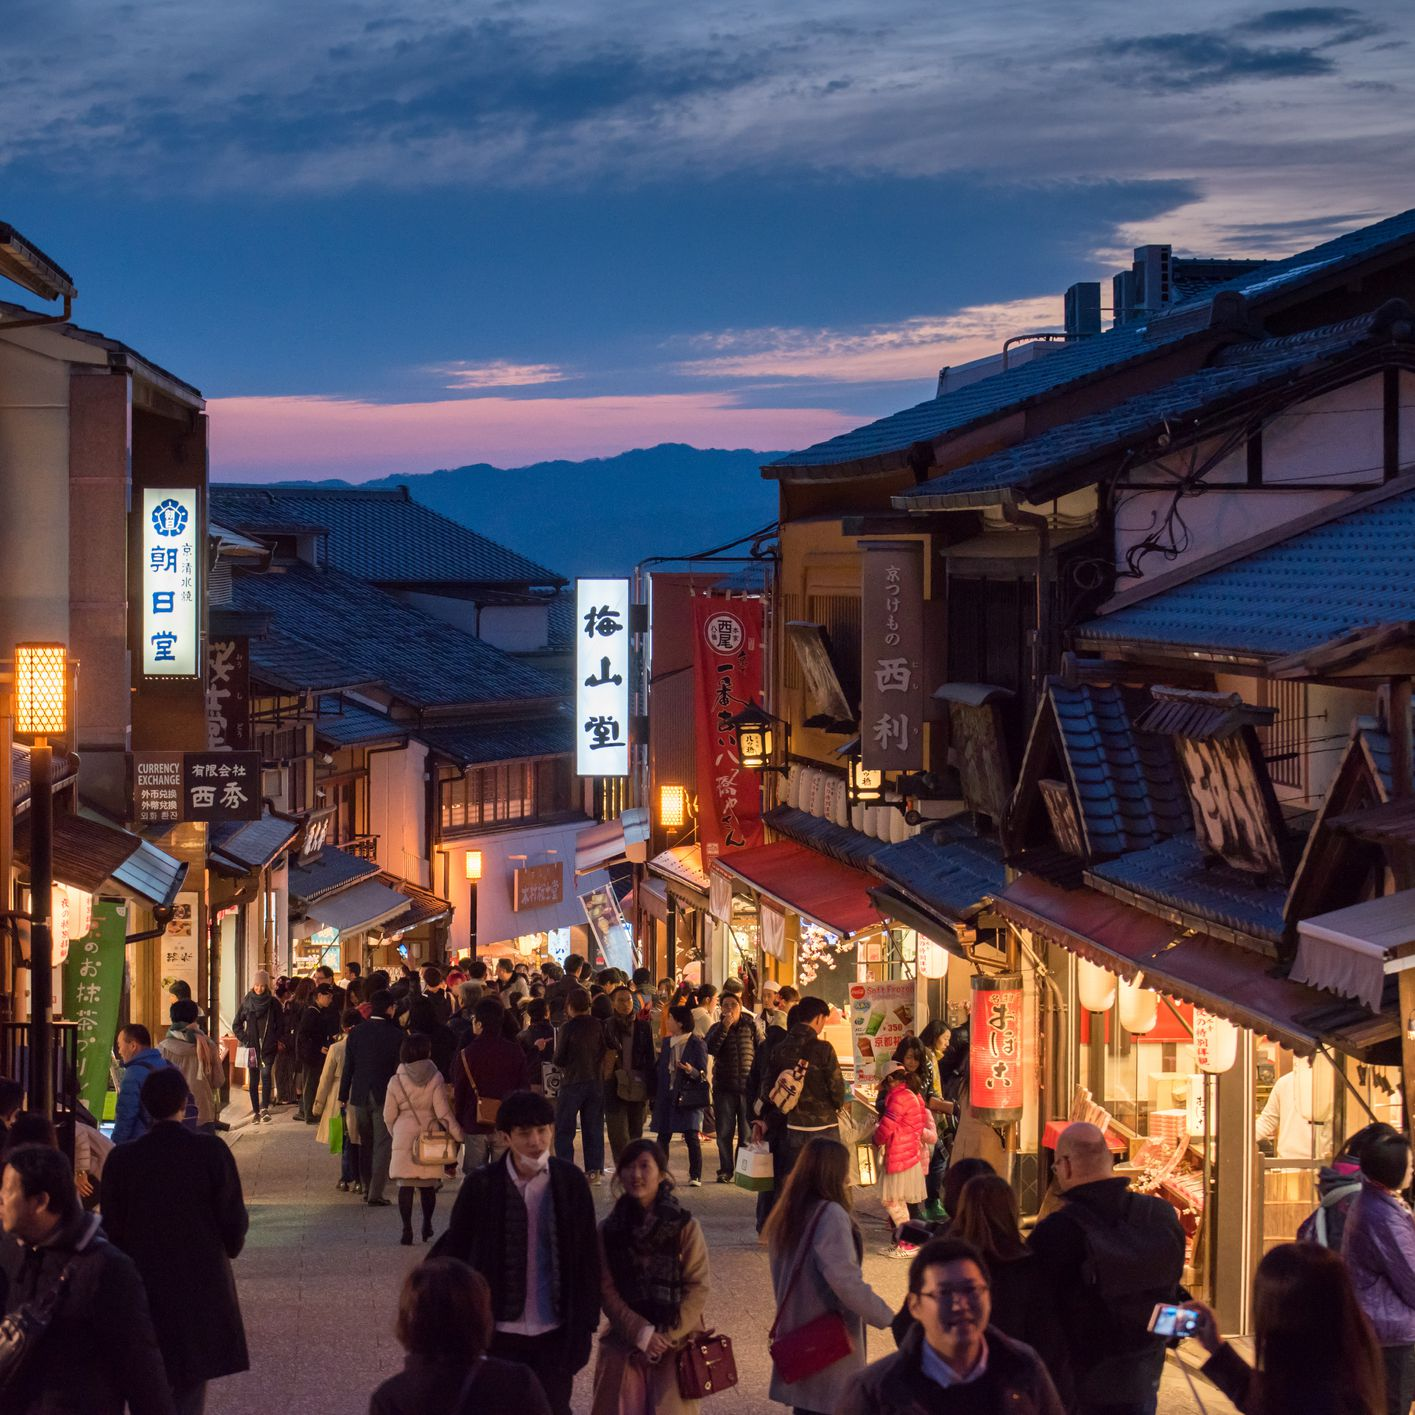 Nightlife in Kyoto: Best Bars, Clubs, & More